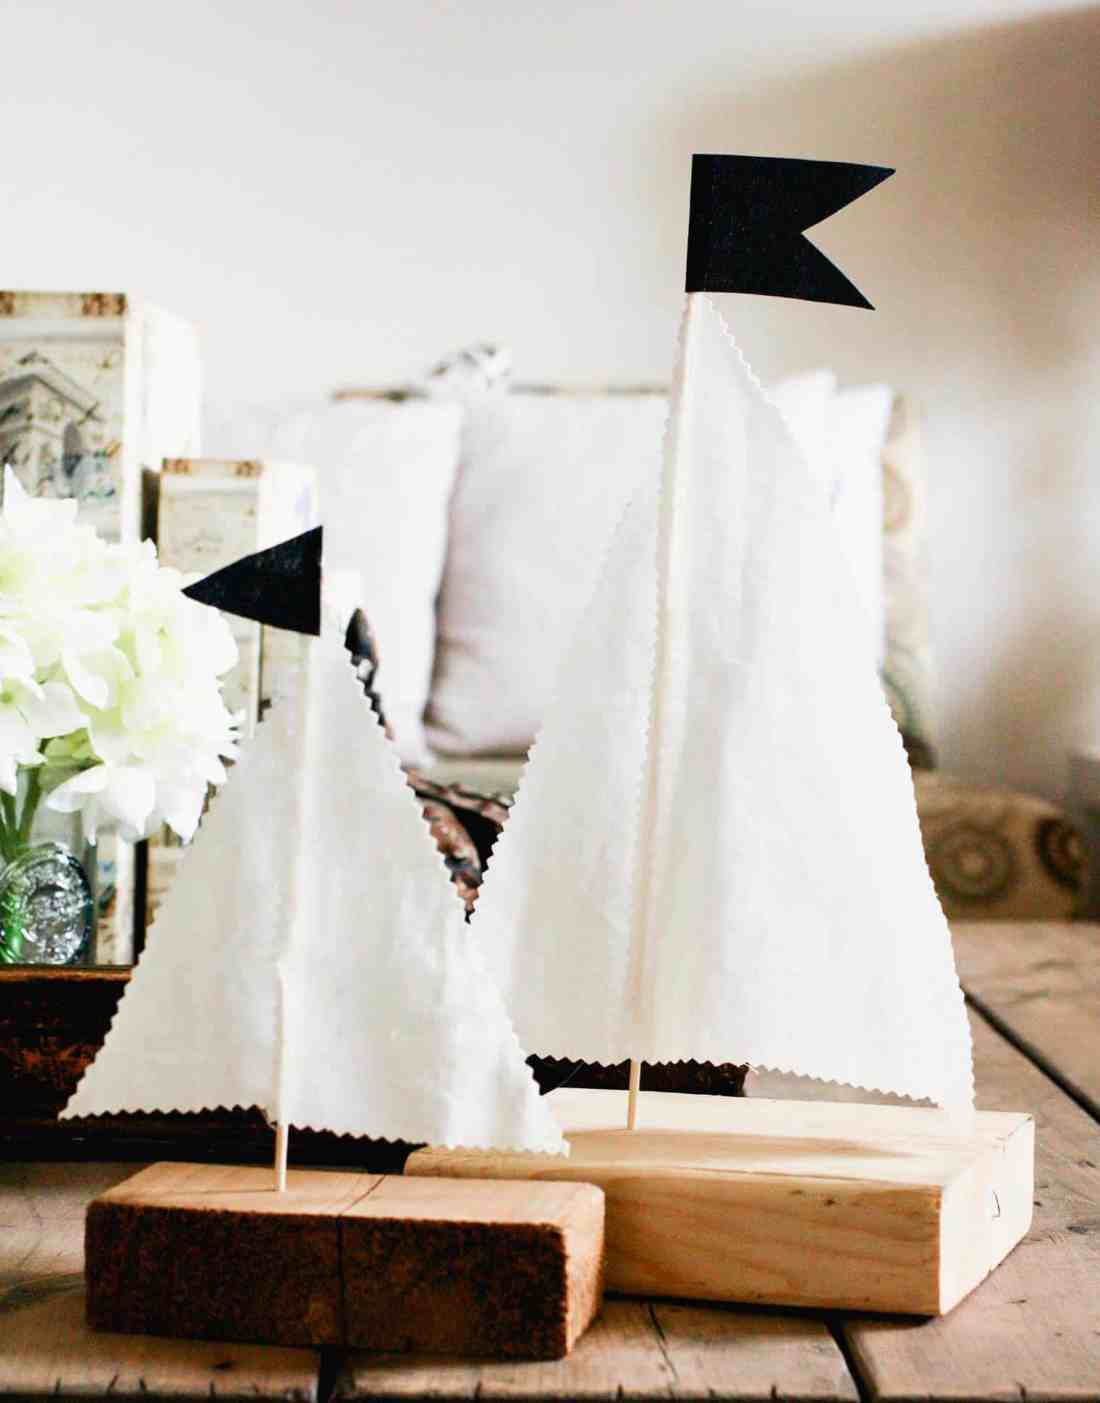 DIY wood sailboats as decor on coffee table